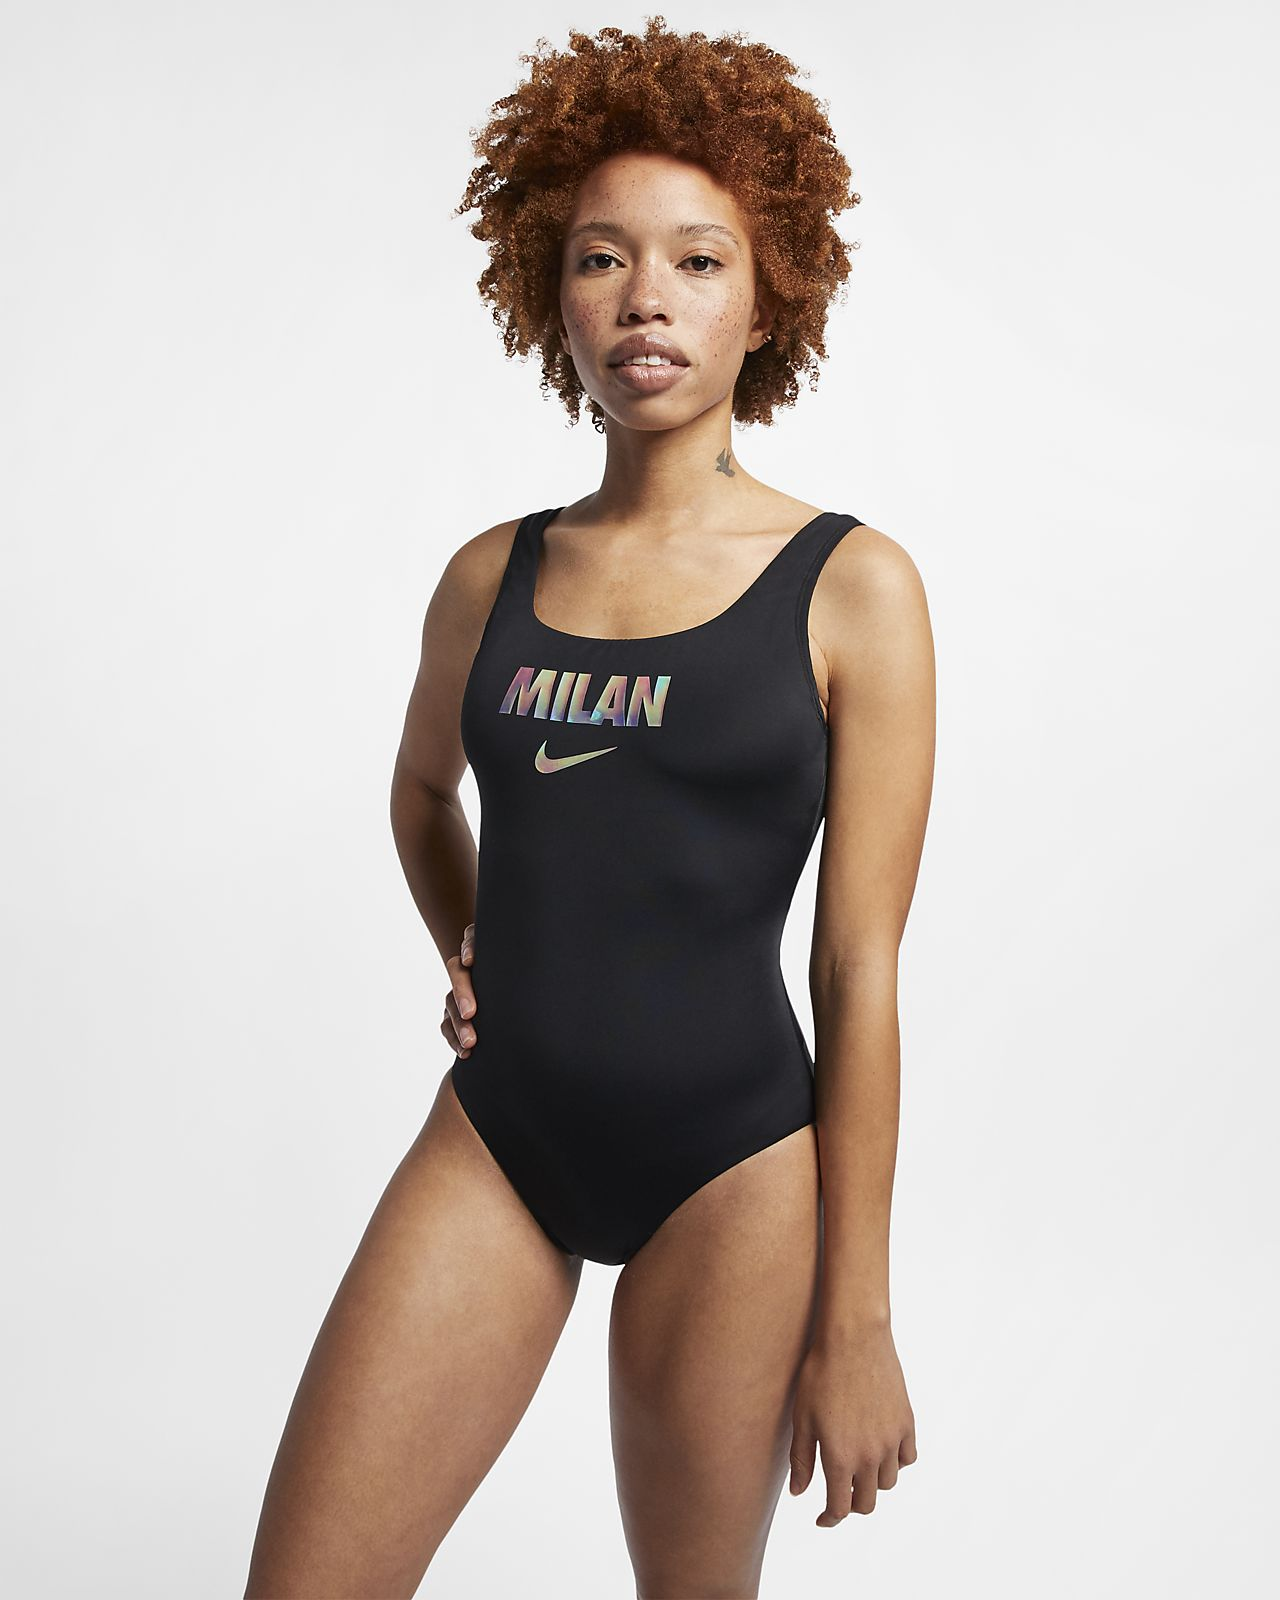 Nike City Series U-Back (Milan) Women's One-Piece Swimsuit